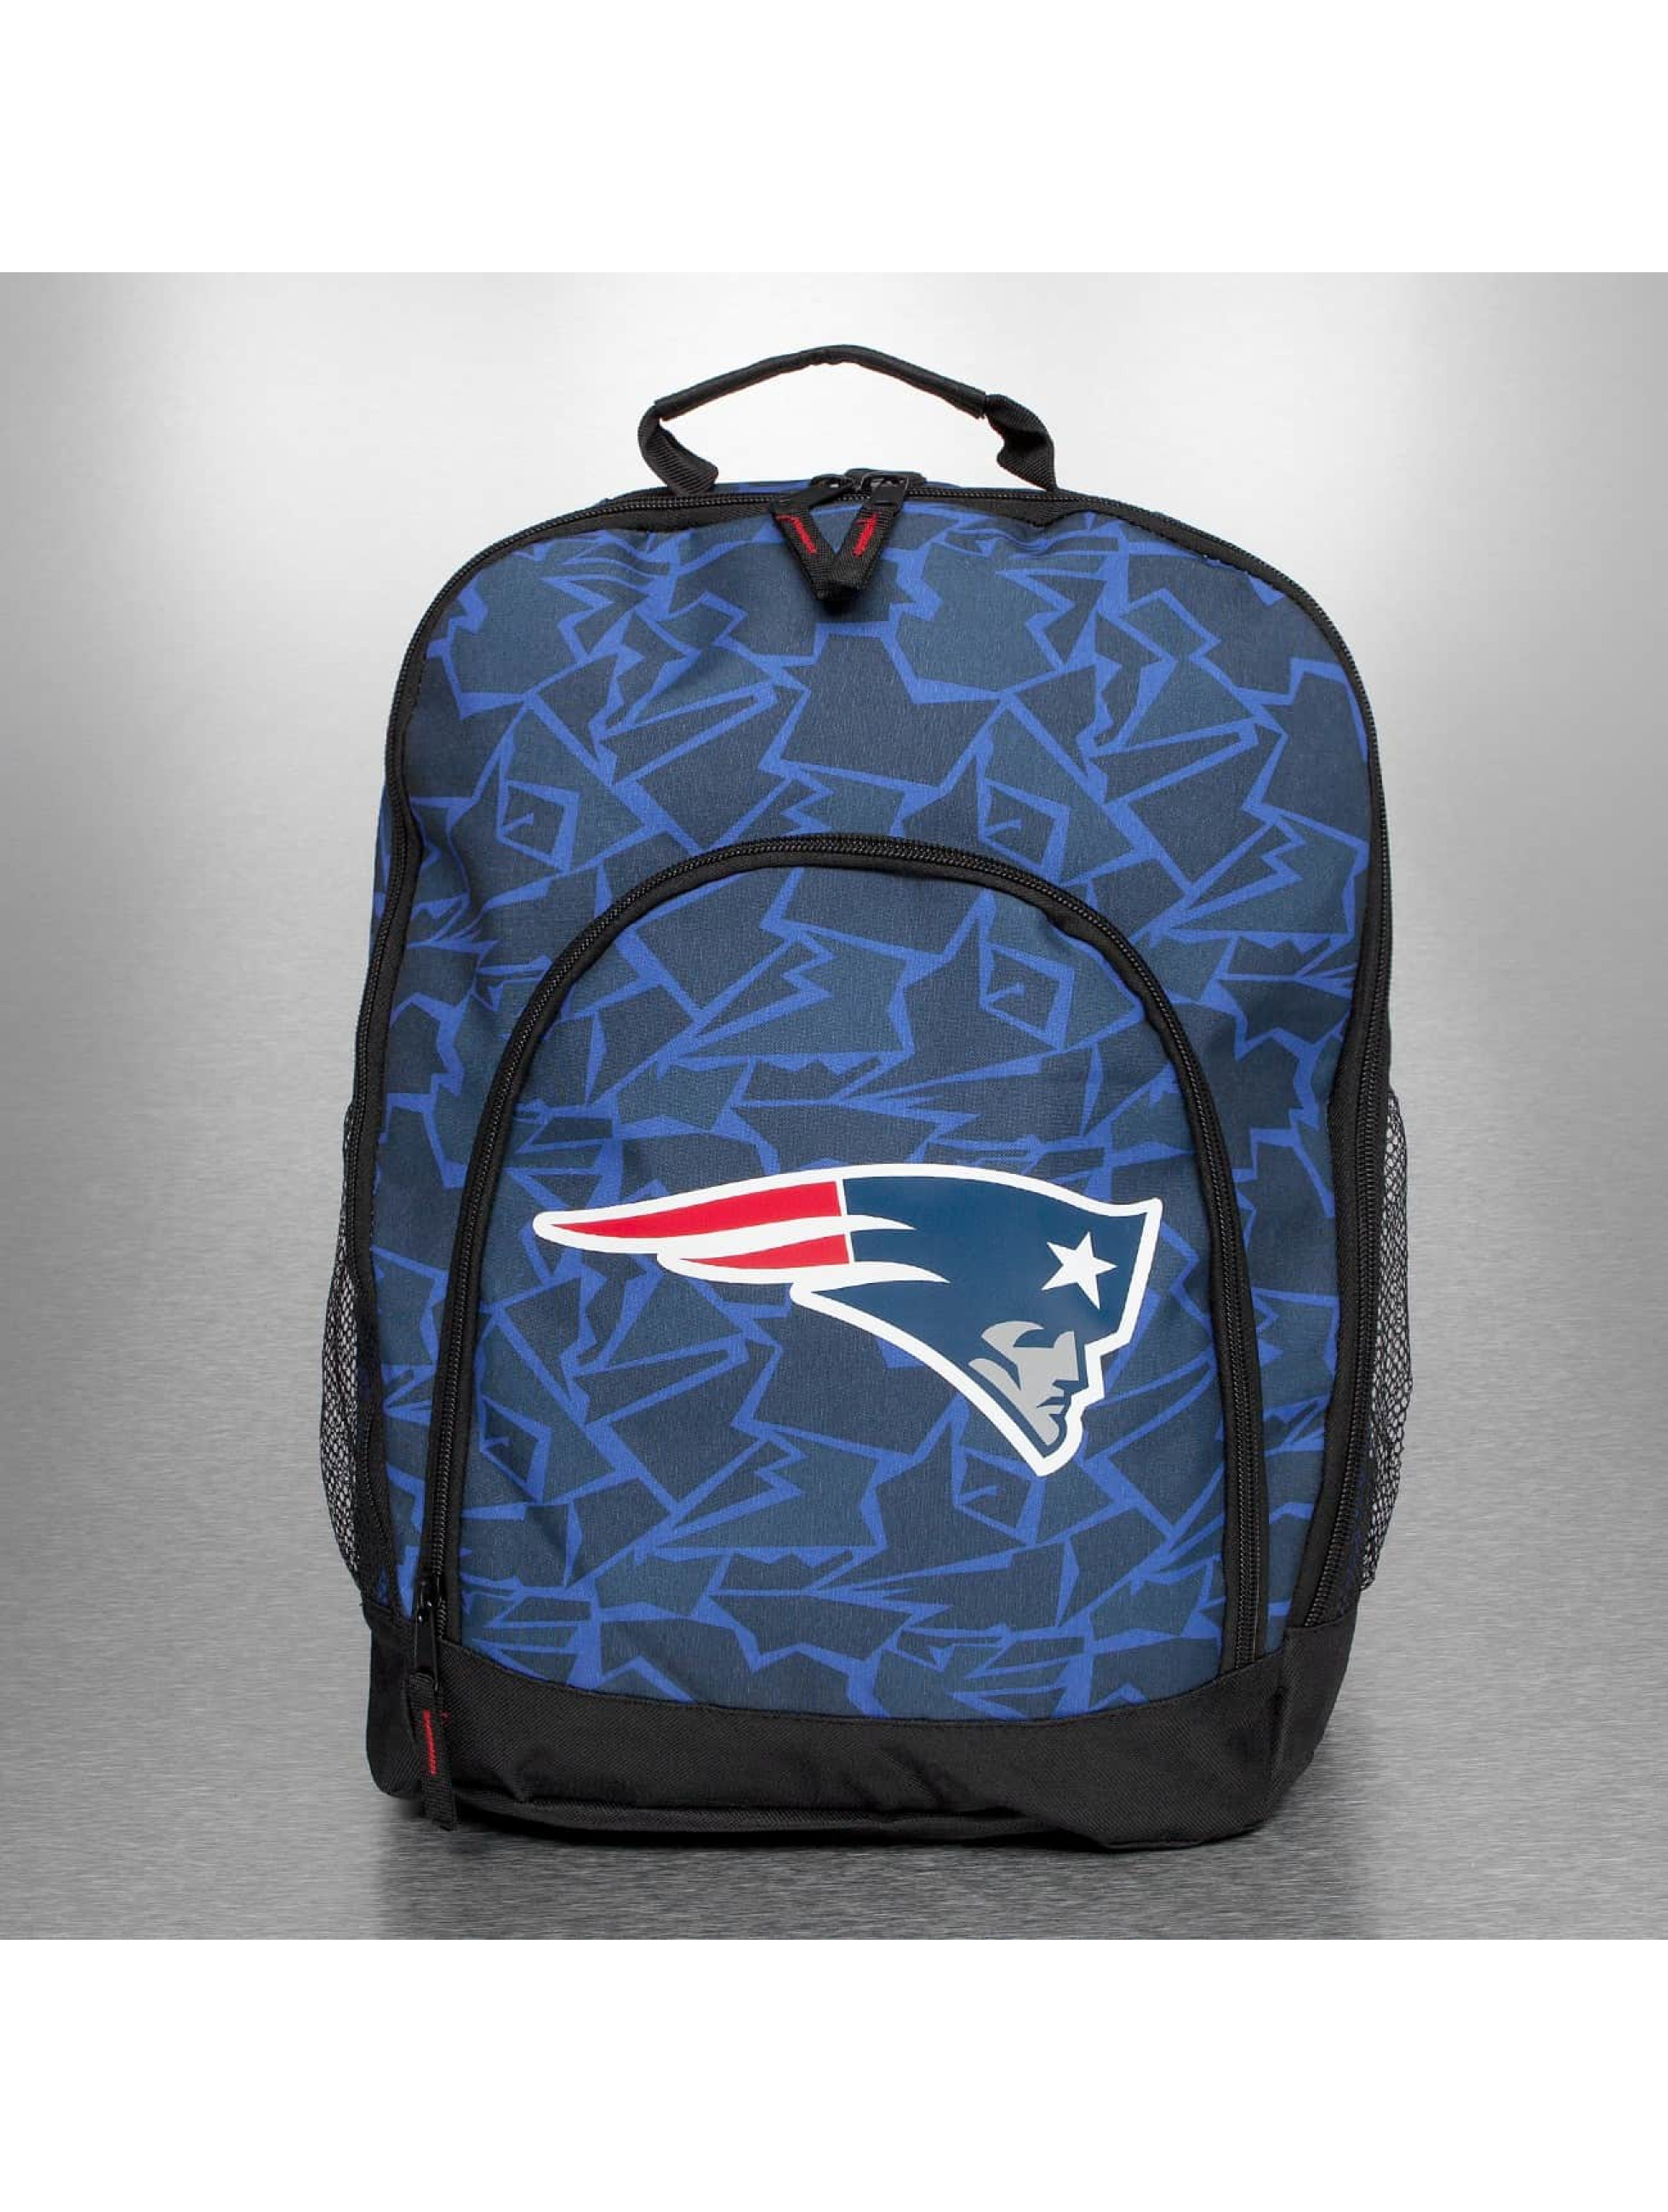 Forever Collectibles Backpack NFL Camouflage New England camouflage